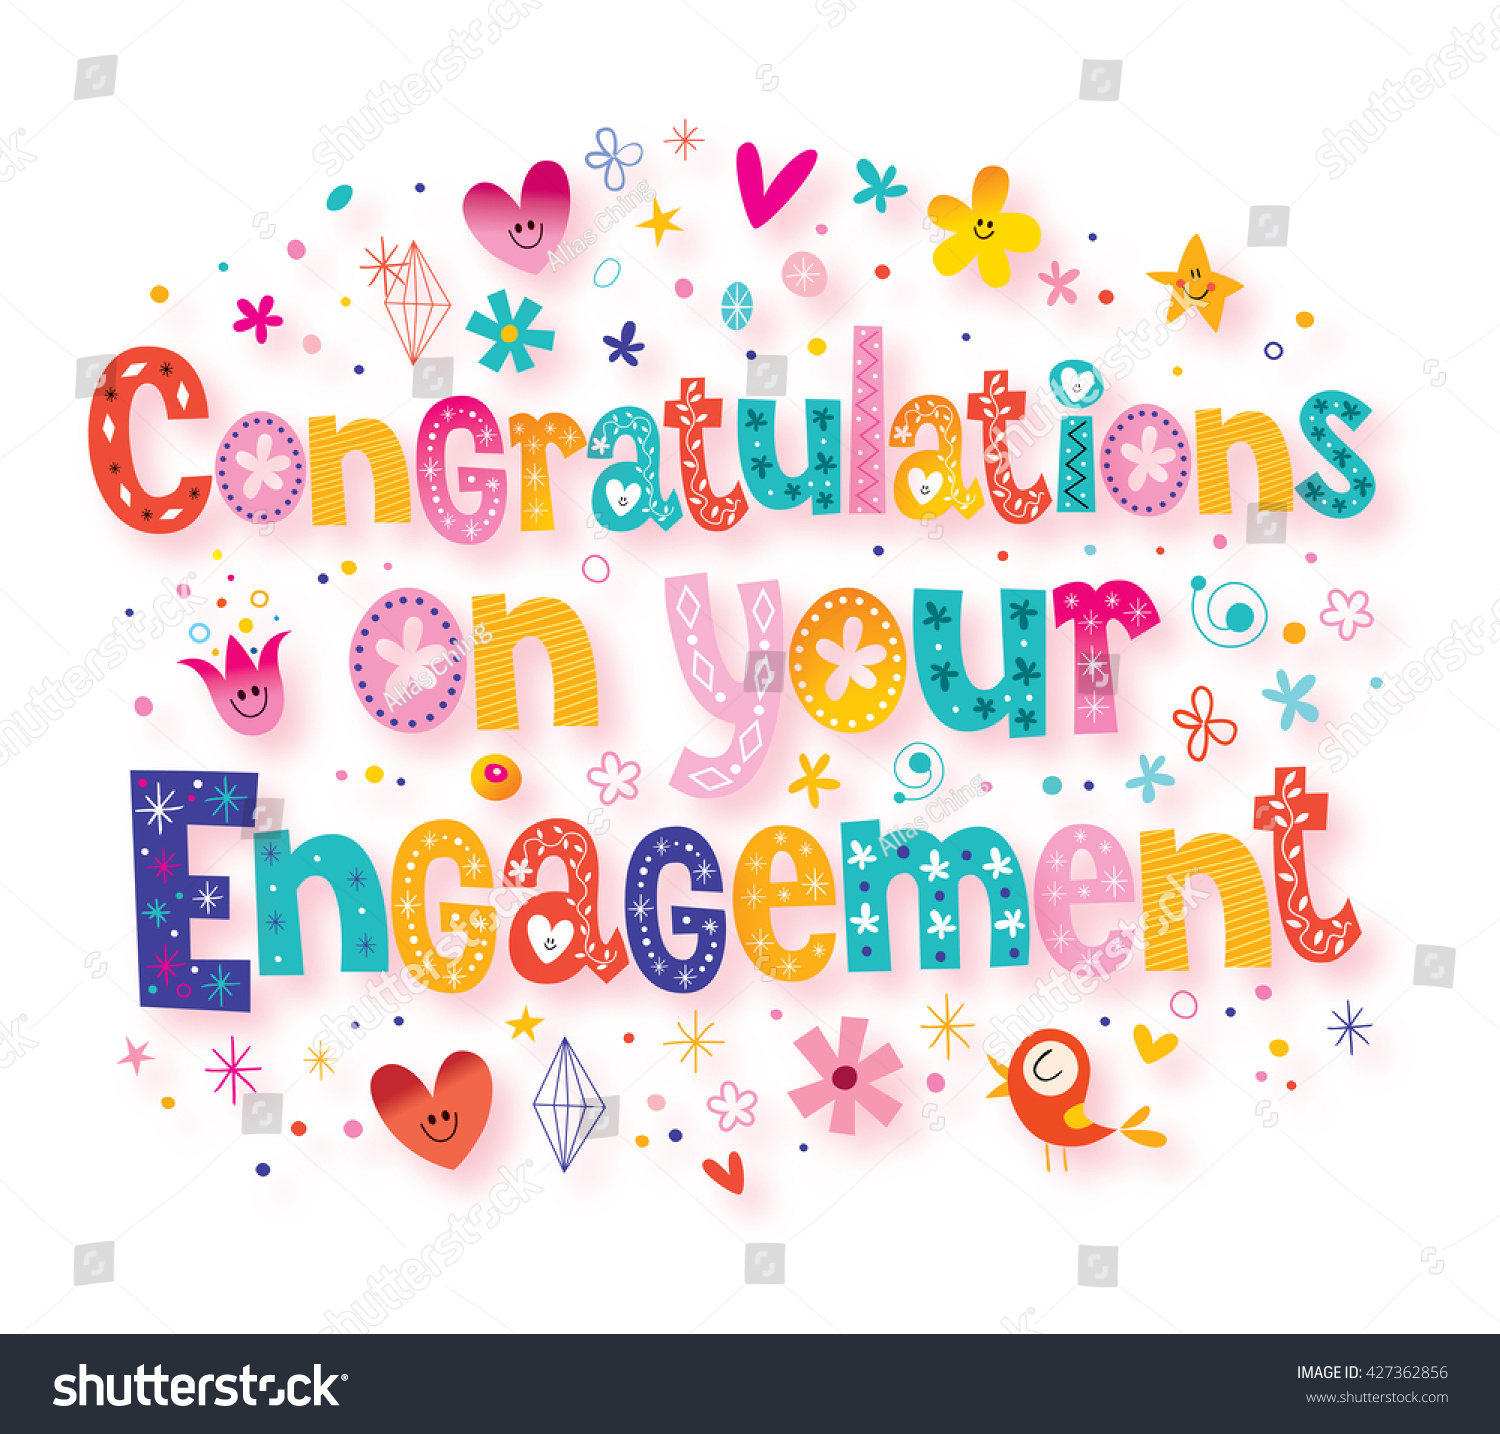 Congratulations on your engagement greeting card ez canvas id 427362856 m4hsunfo